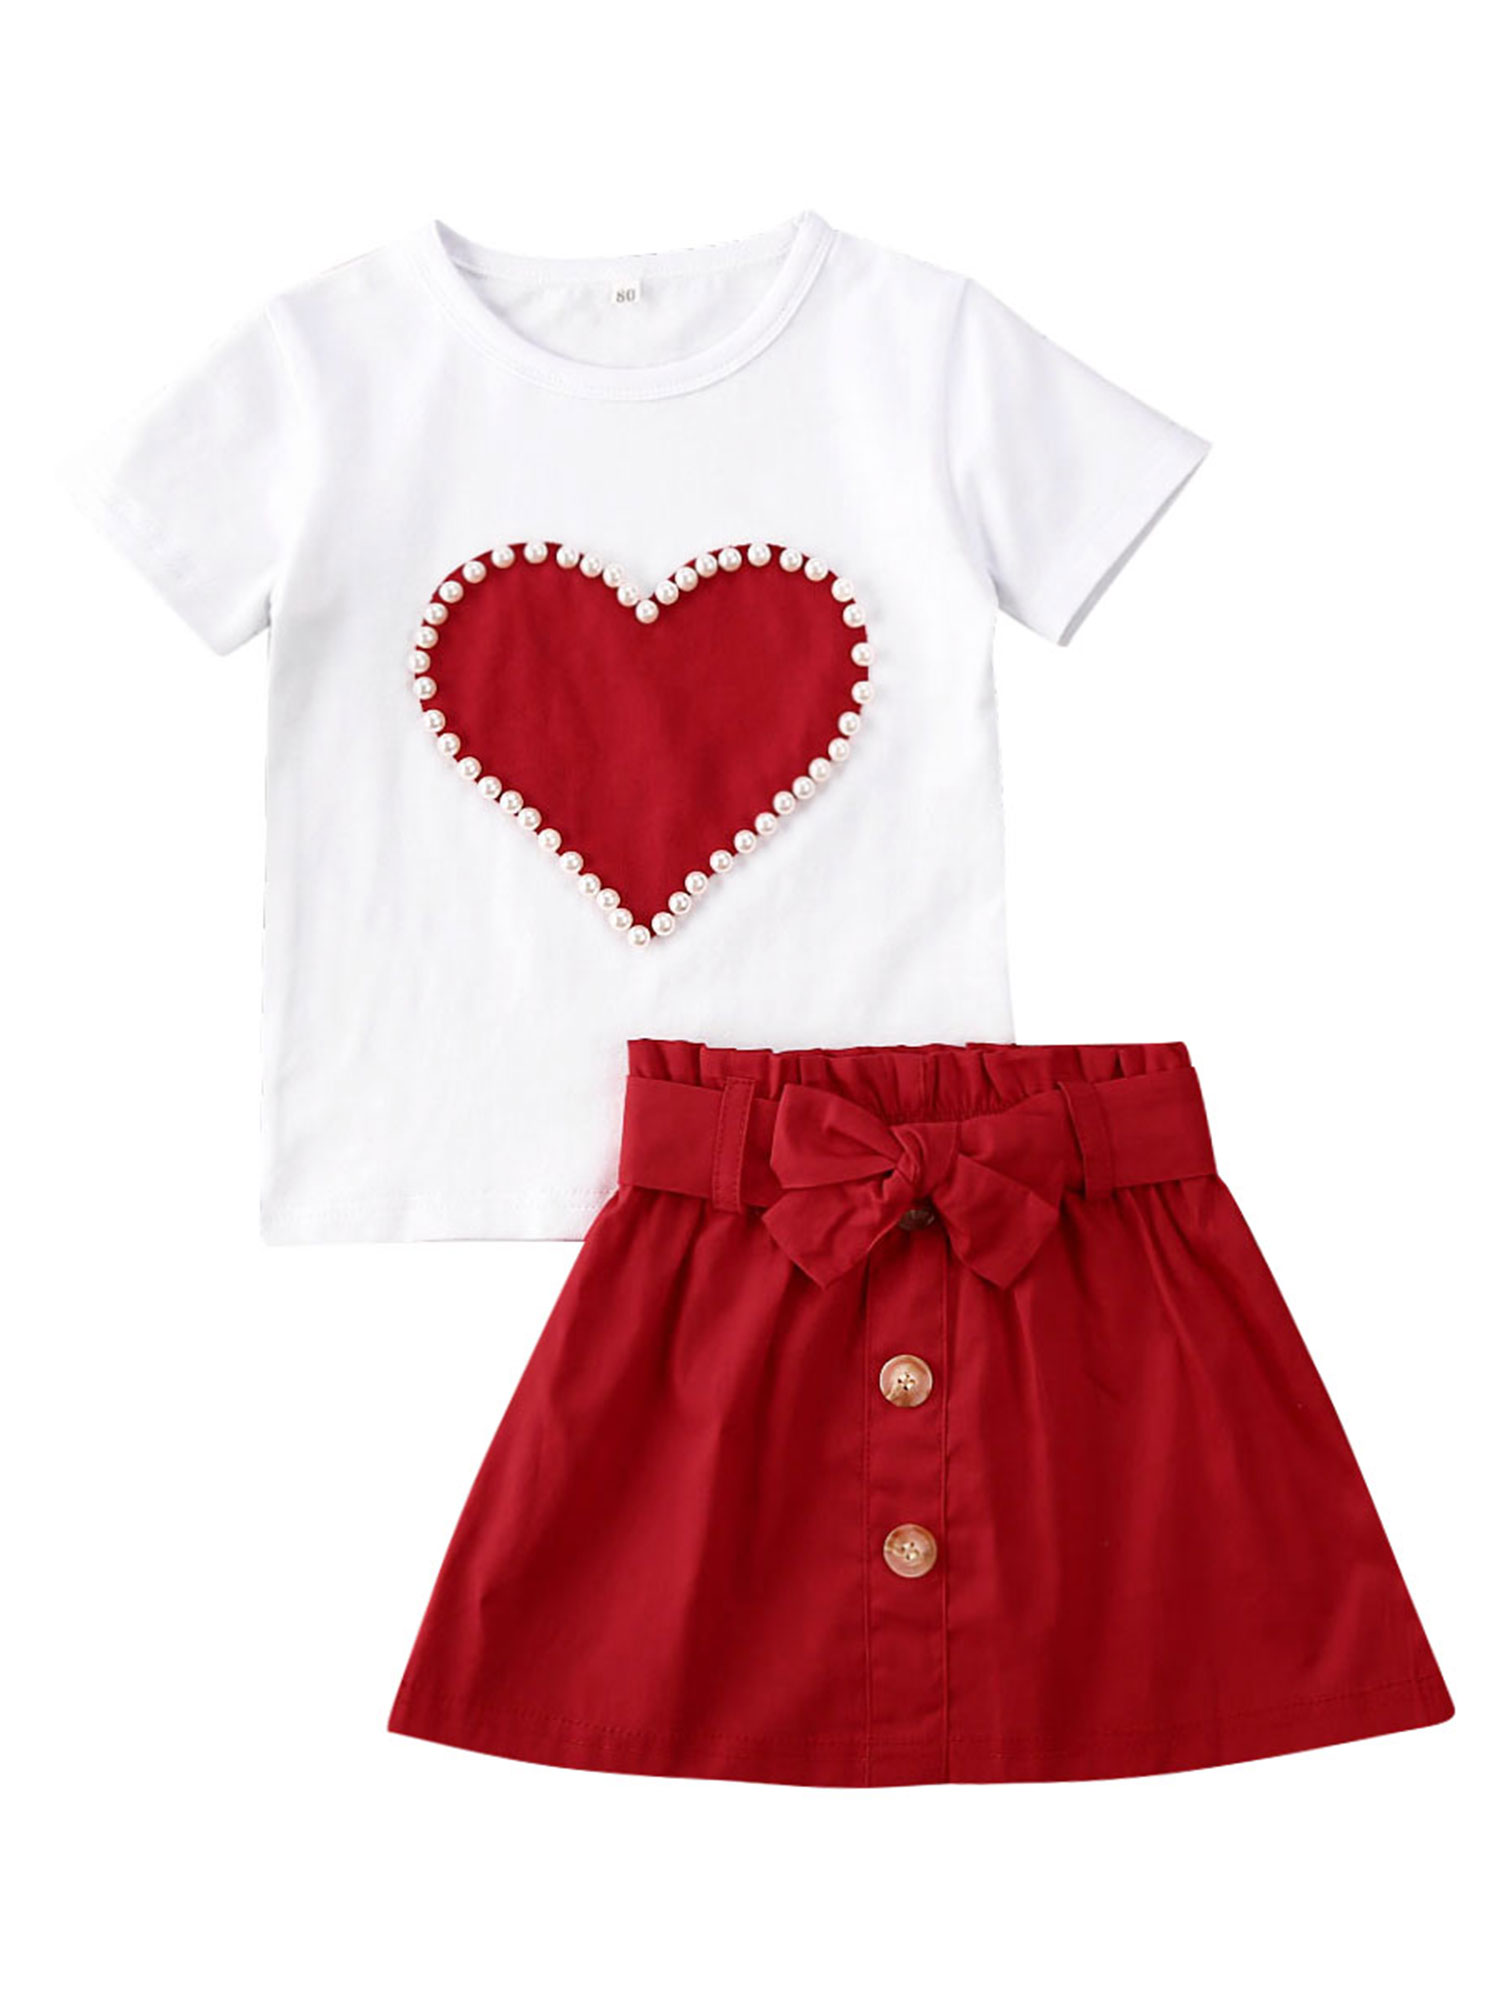 Details about  /Toddler Baby Kids Girls Casual Fruit Print T-shirt Tops Solid Dress Clothes Set